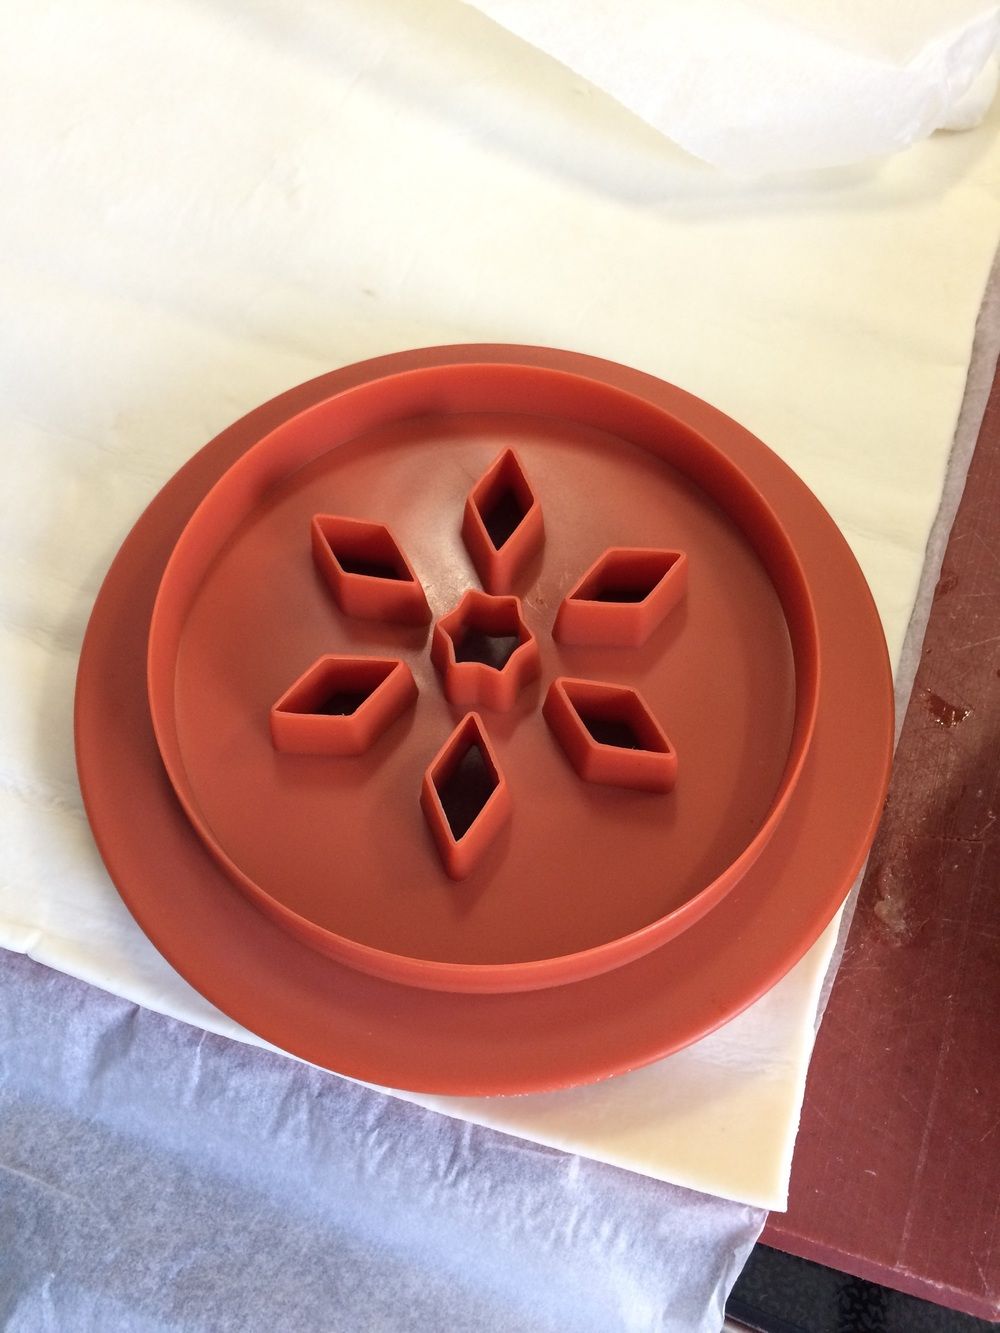 the pie mould comes with a cutter